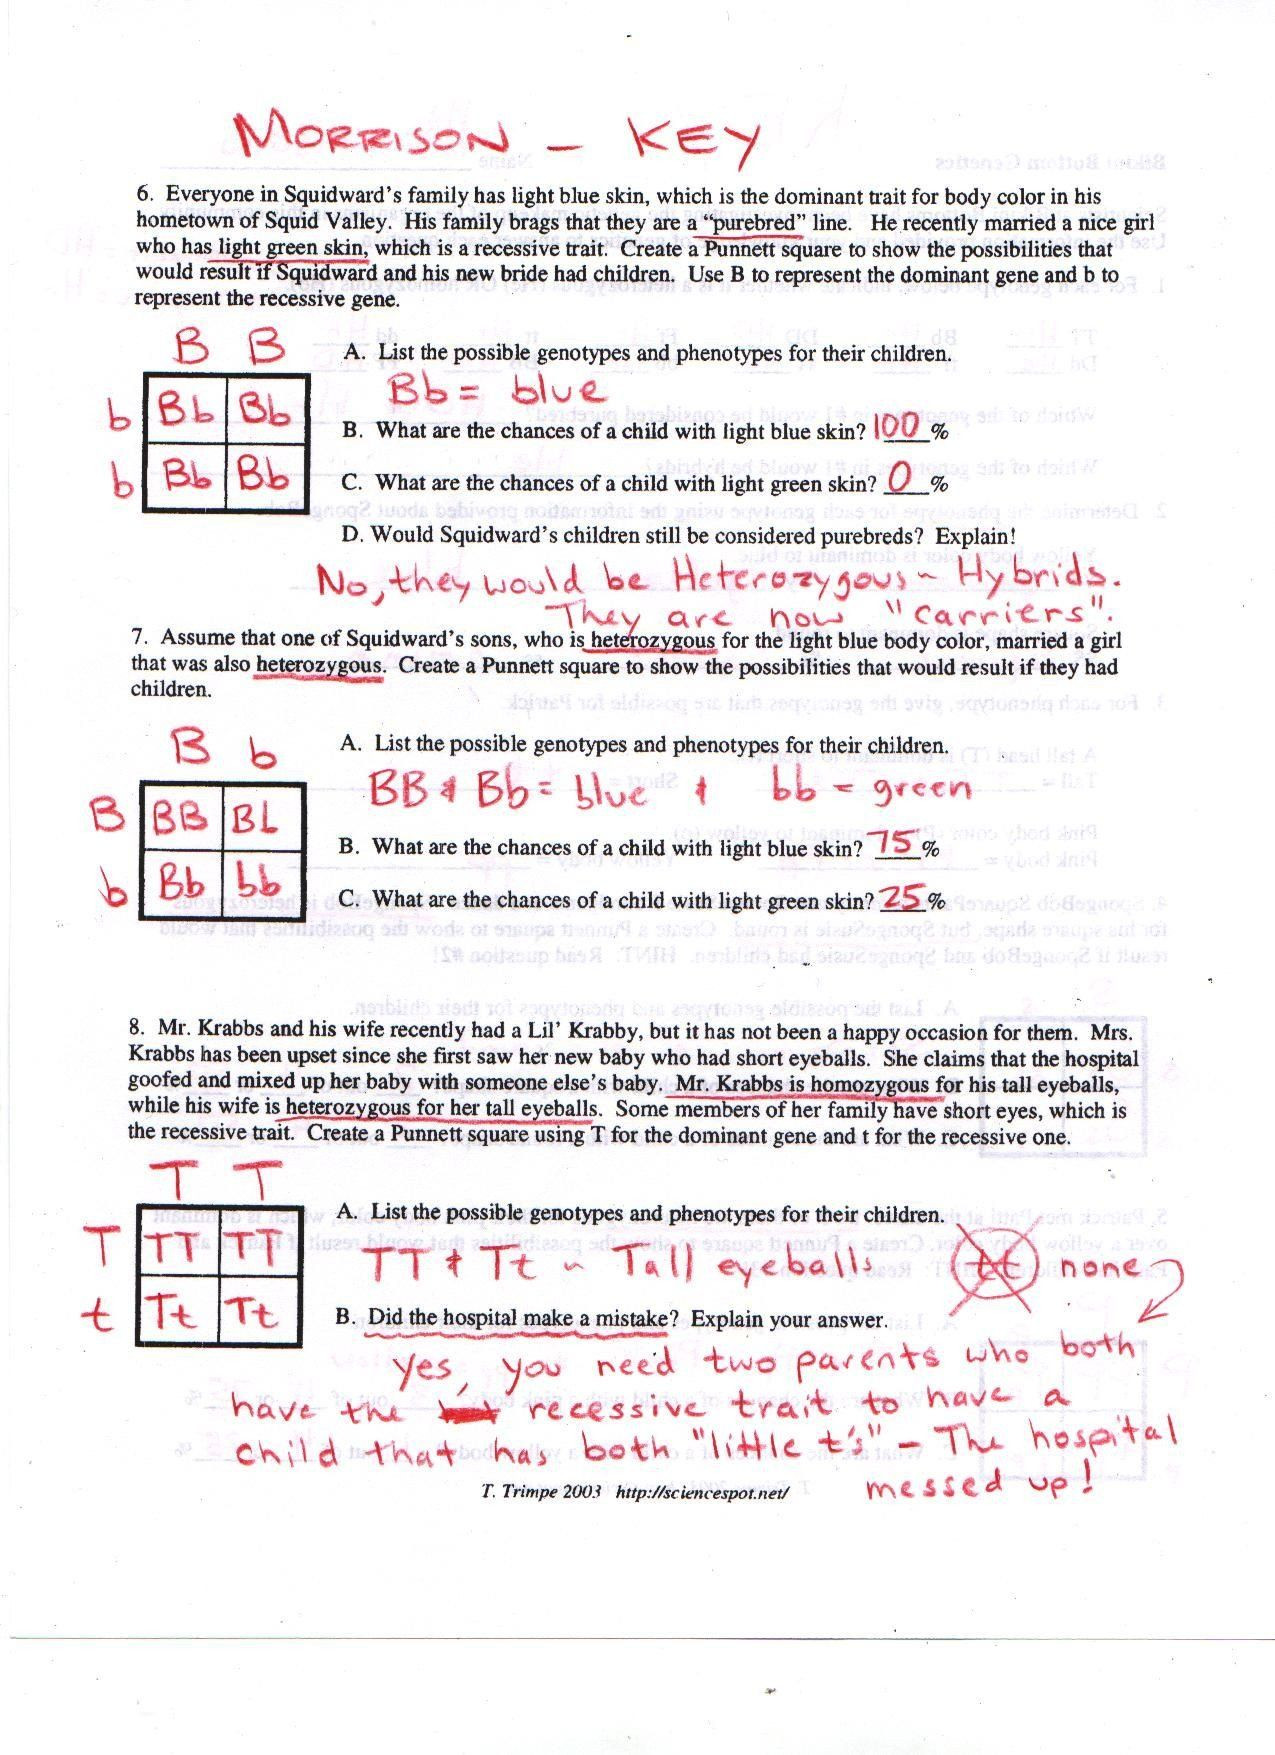 30 Genotypes And Phenotypes Worksheet Answers